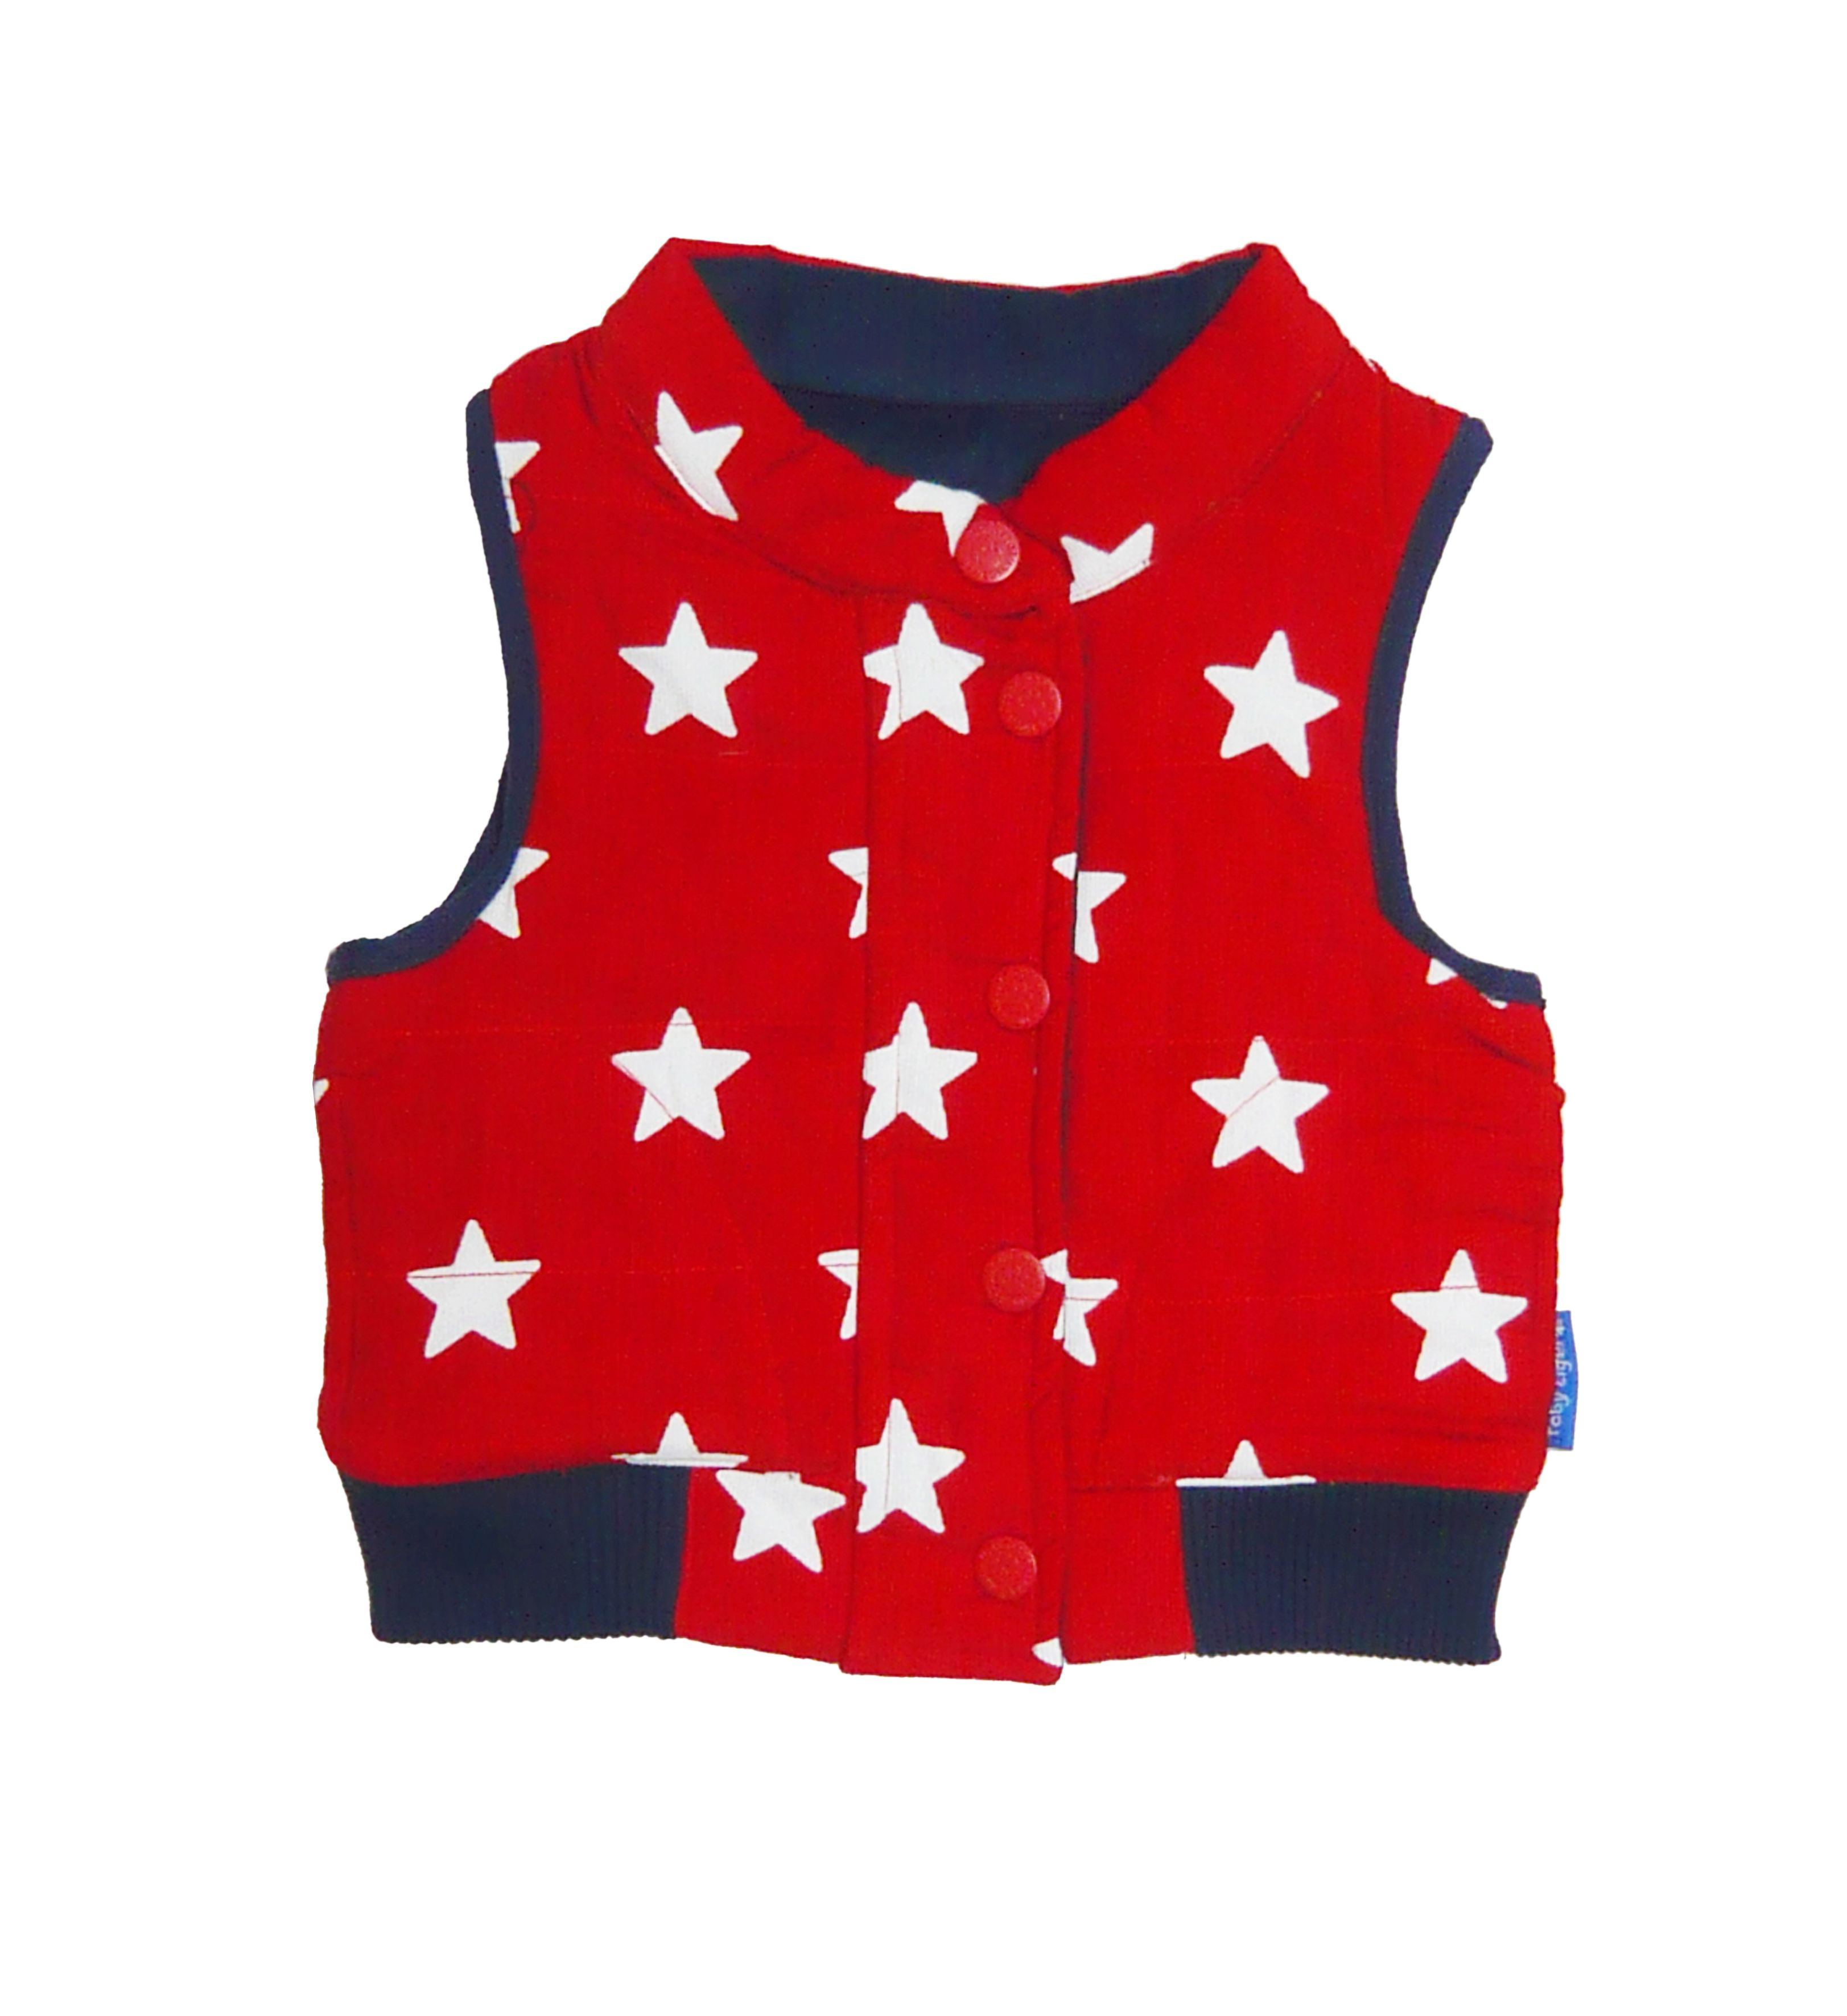 Toby Tiger Boys reversible cord gilet with stars, Red